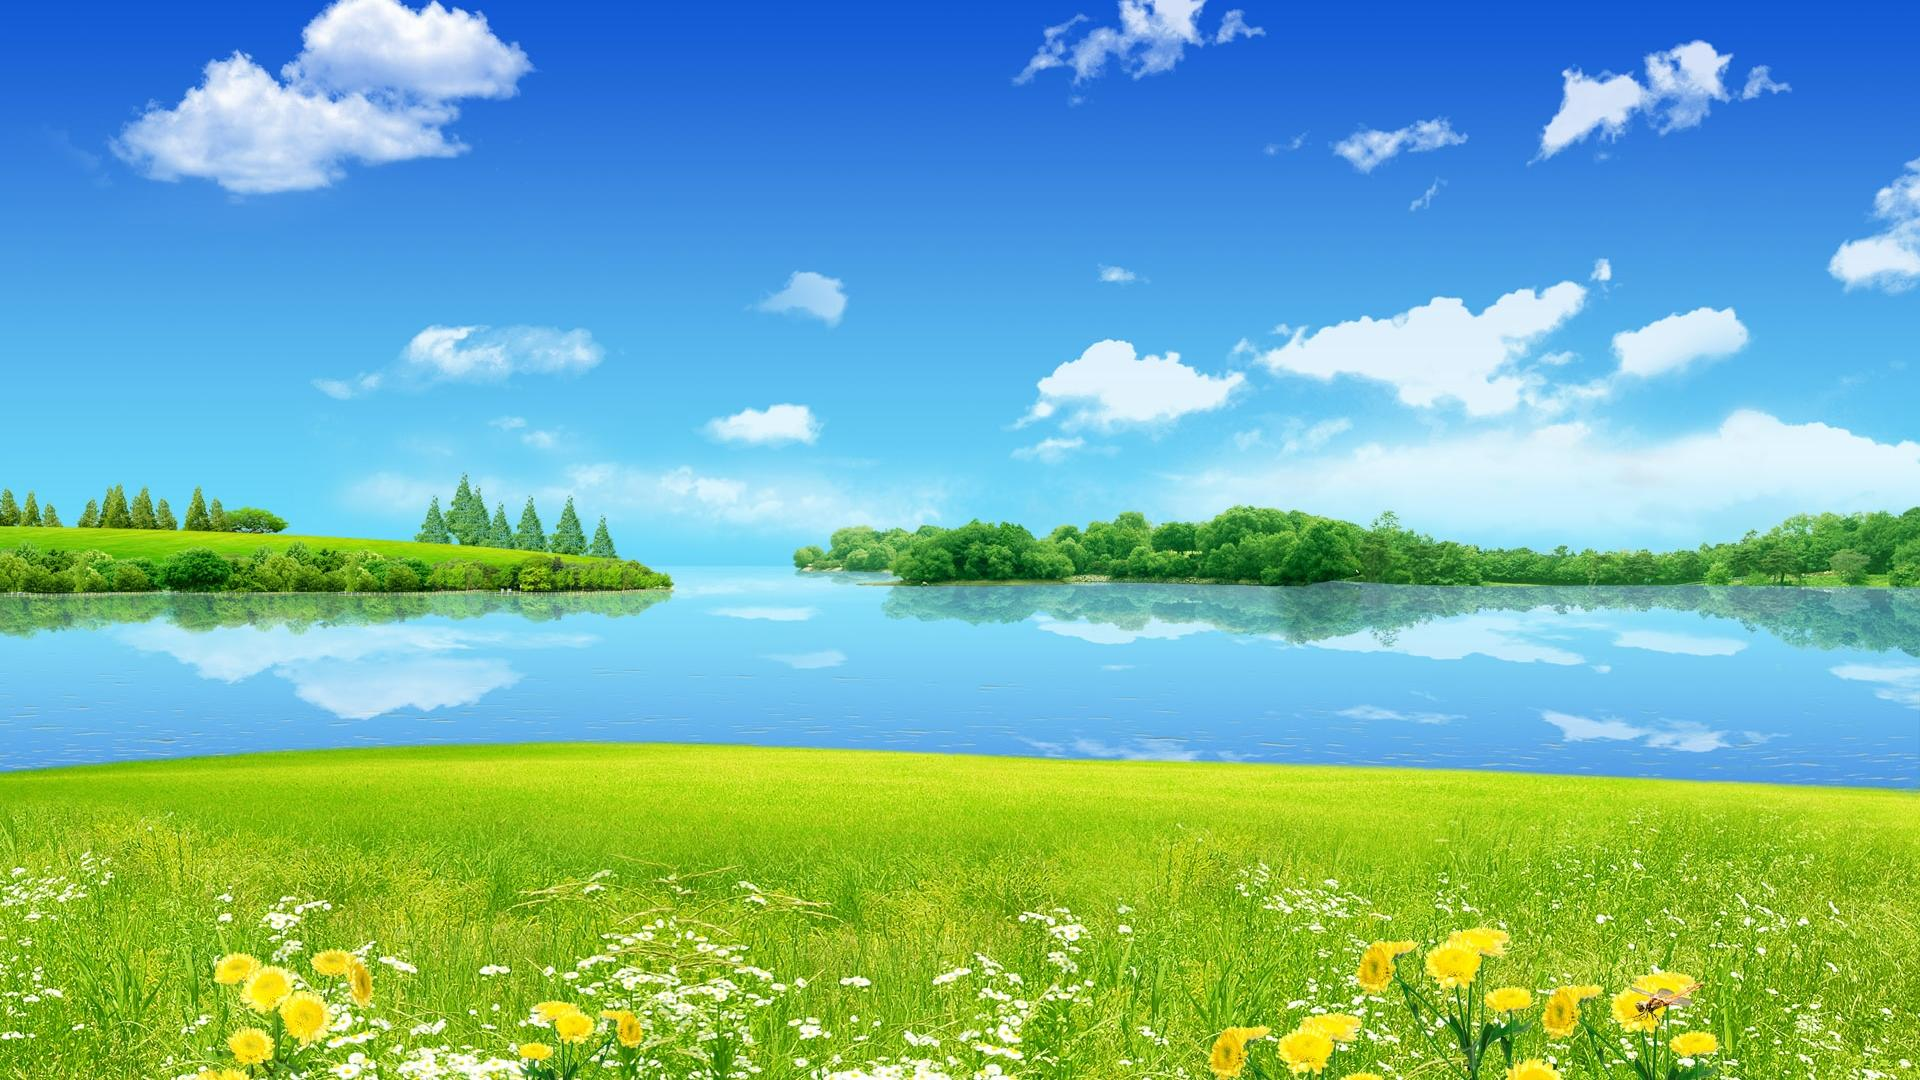 Summer Desktop Wallpaper Background Hd Pixelstalk Net